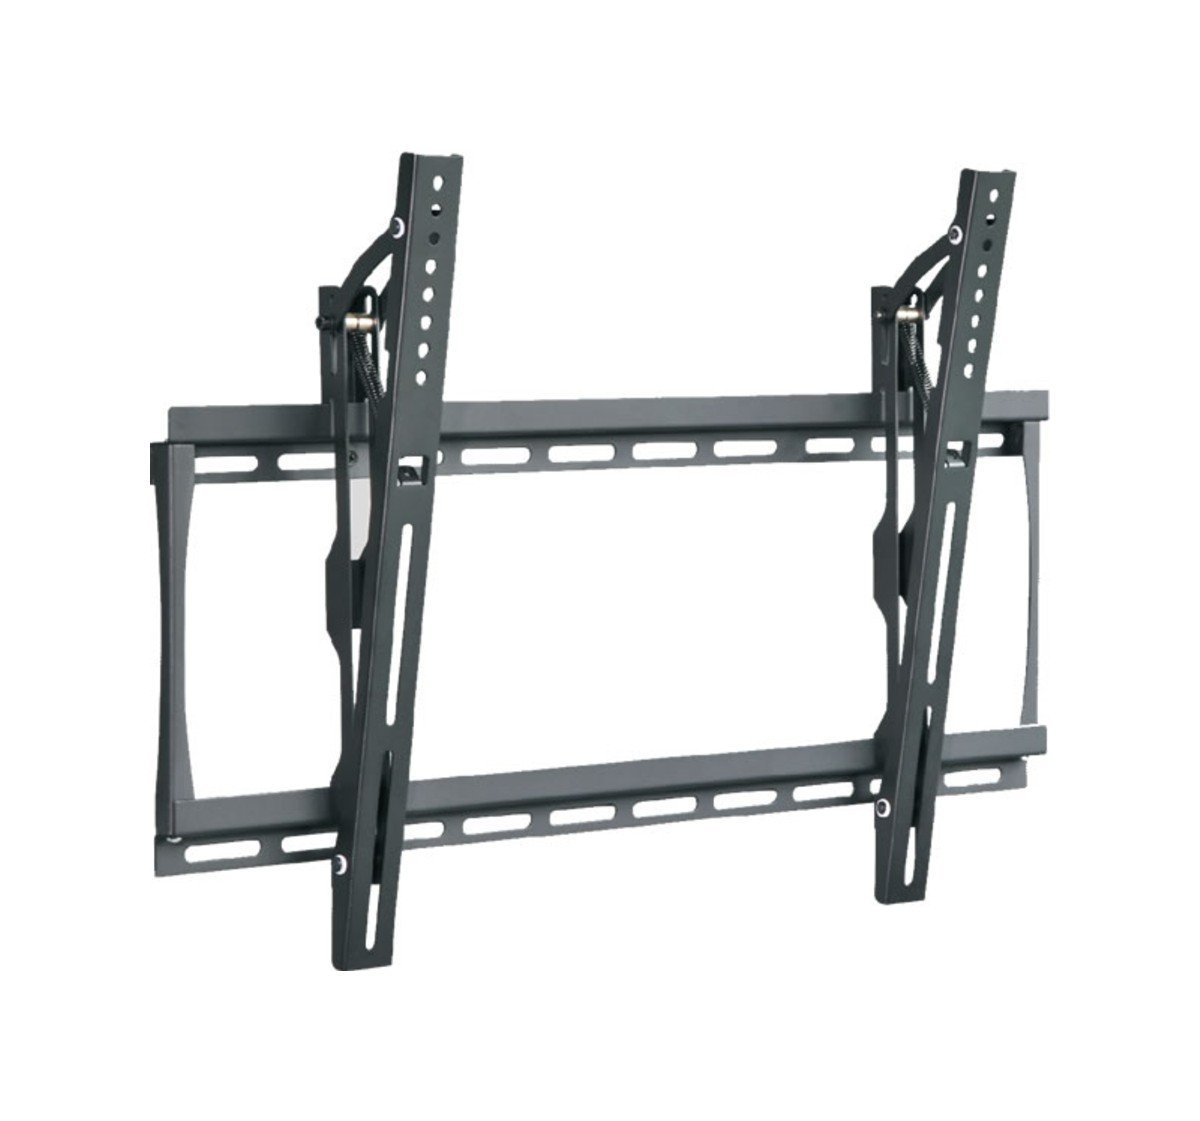 """Professional Tilt Wall Mount with Leveling for Samsung LG 50"""" 55"""" 60"""" 65"""" 70"""" 75"""" 78"""" 85"""" .. only 1.65"""" off the wall"""